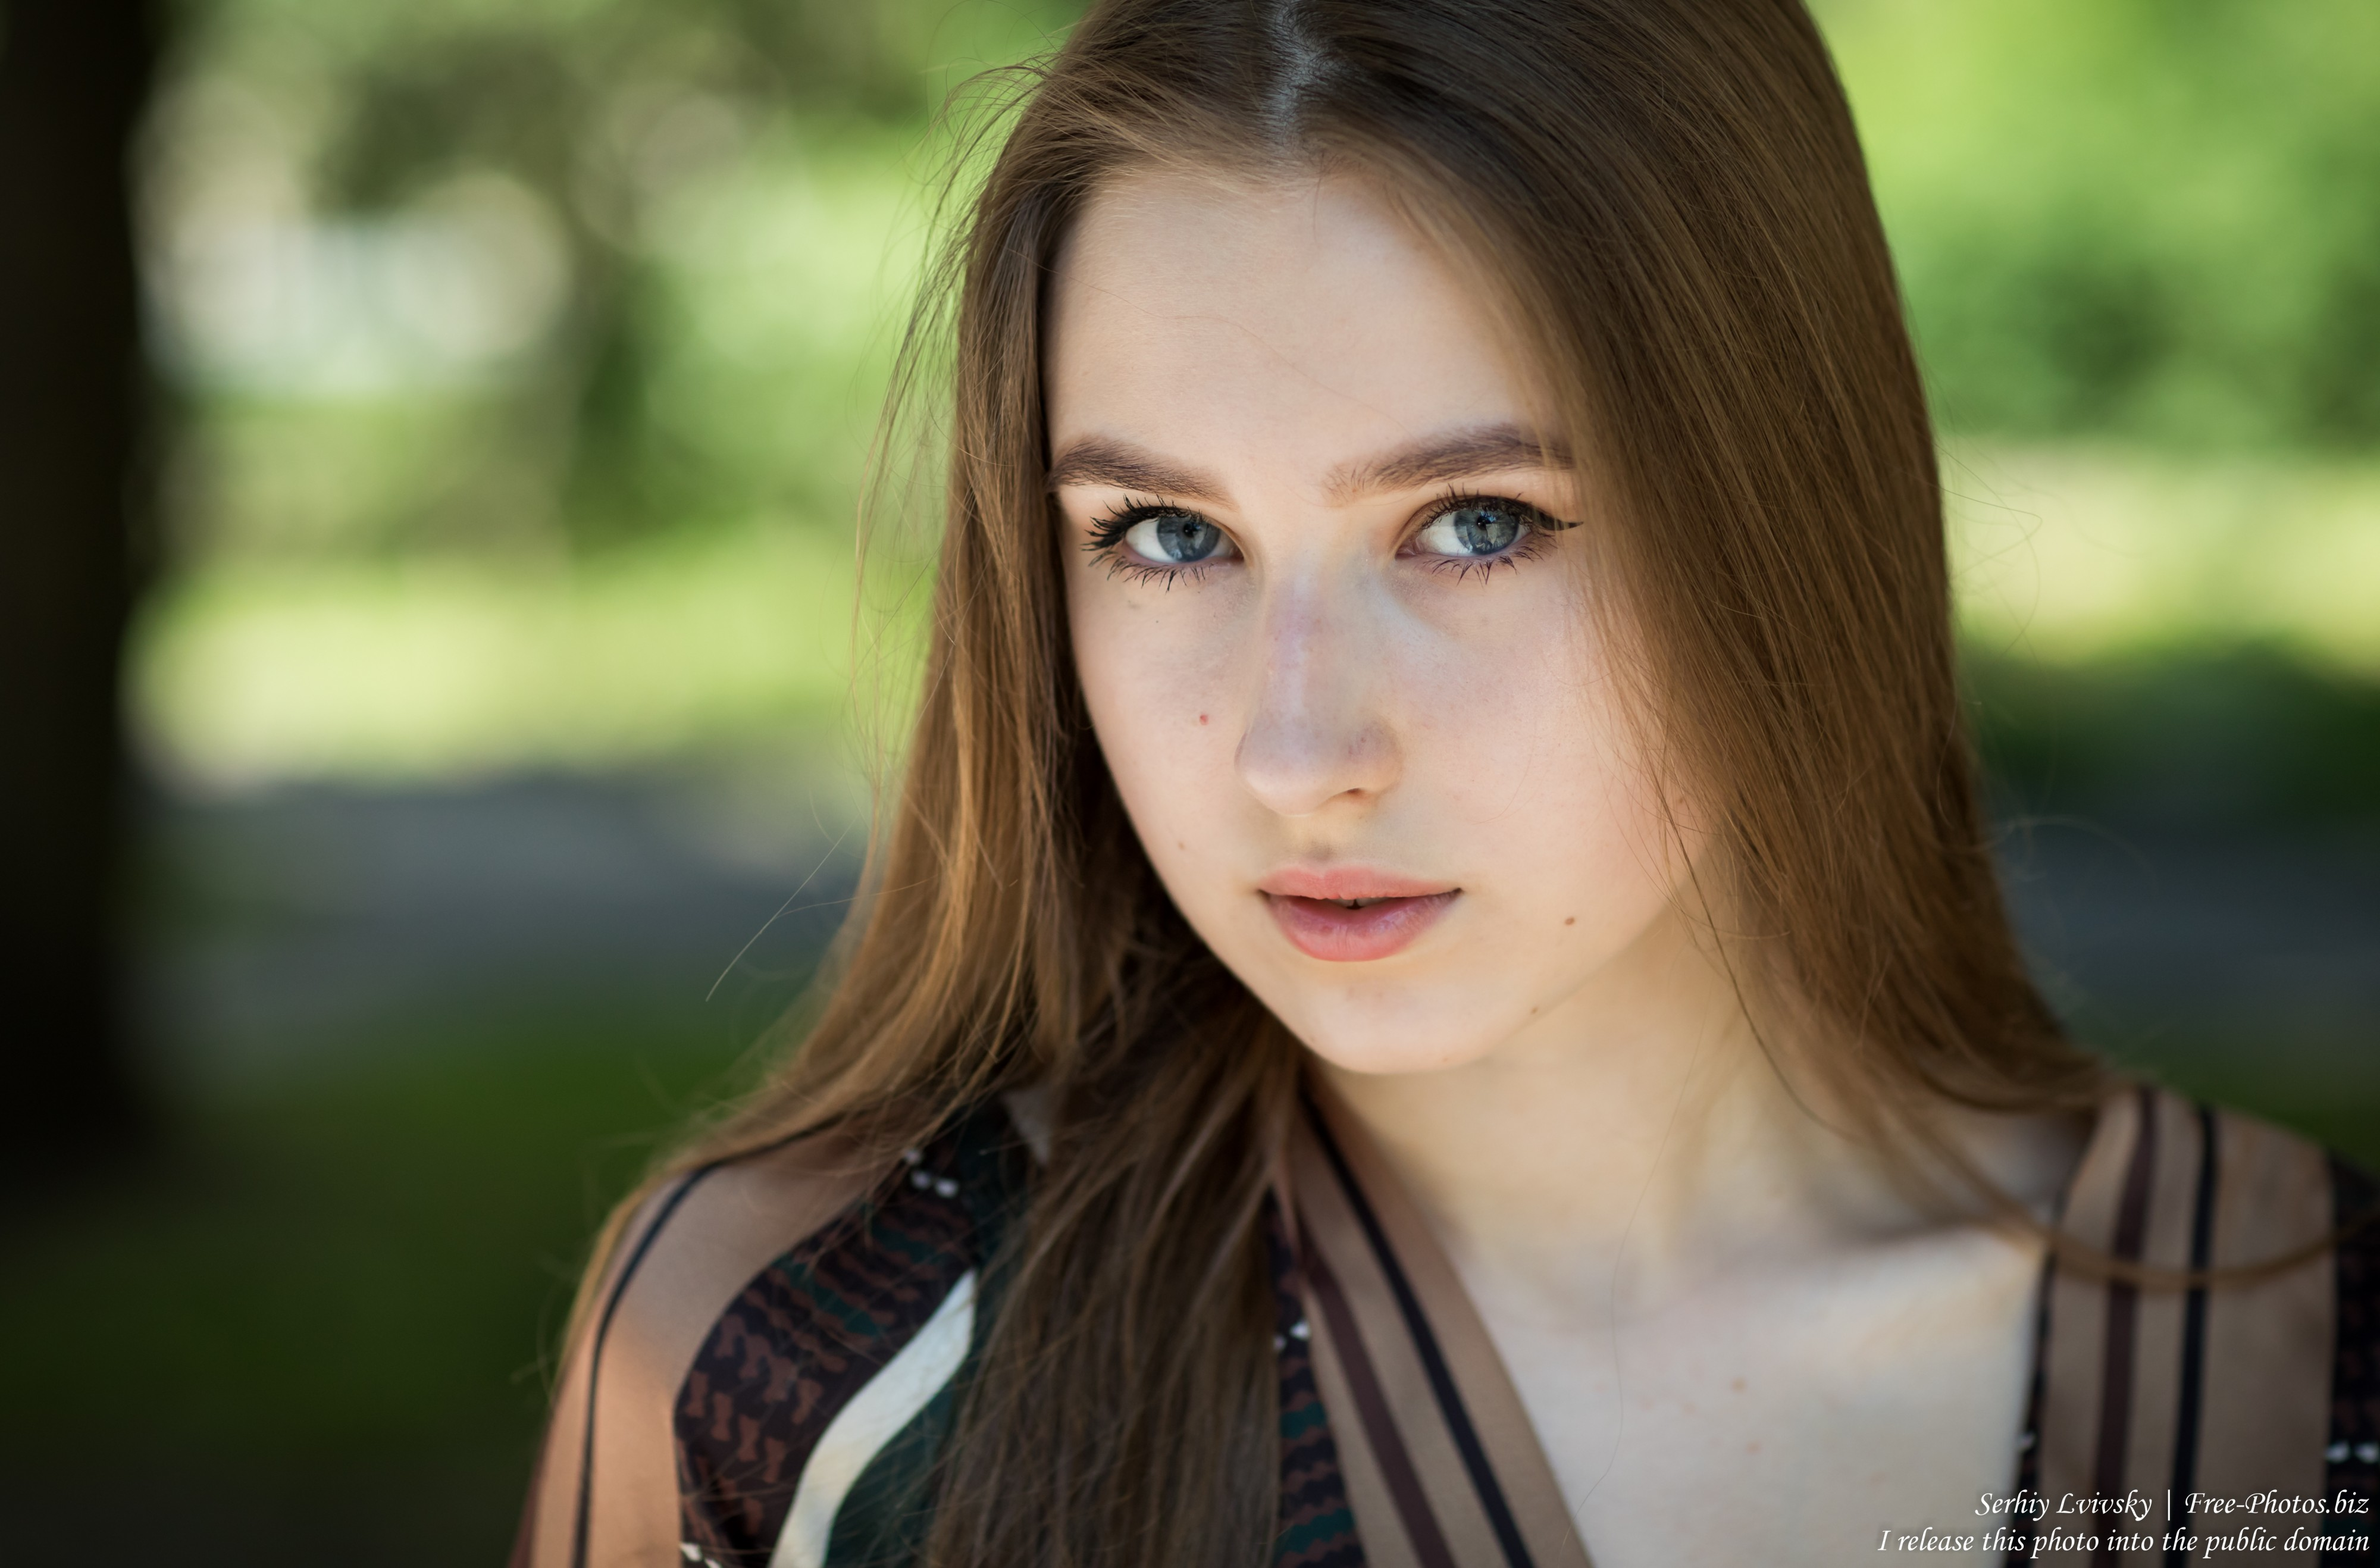 Vika - a 17-year-old girl with blue eyes and natural fair hair photographed in June 2019 by Serhiy Lvivsky, picture 28